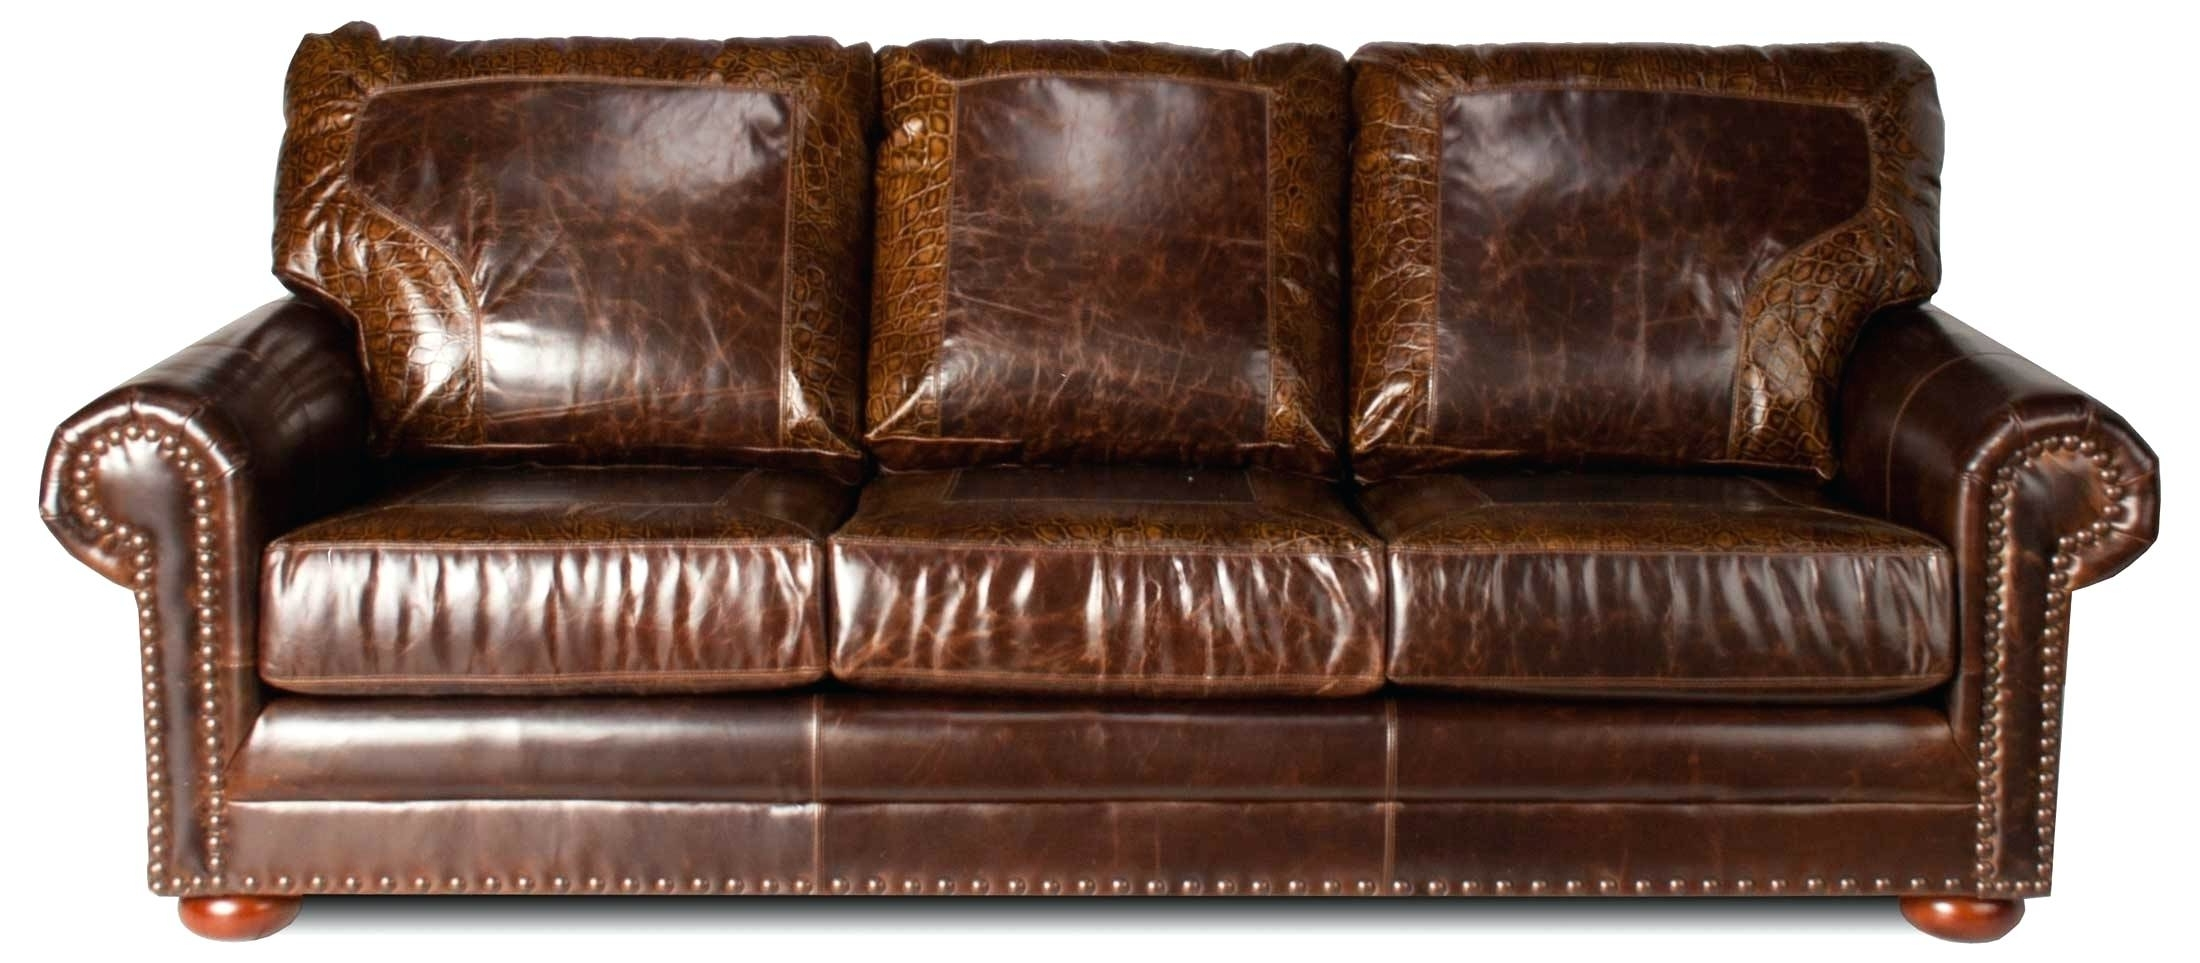 Custom Leather Sofas Toronto Sofa North Carolina Sectional San Throughout Most Up To Date Made In North Carolina Sectional Sofas (View 10 of 20)